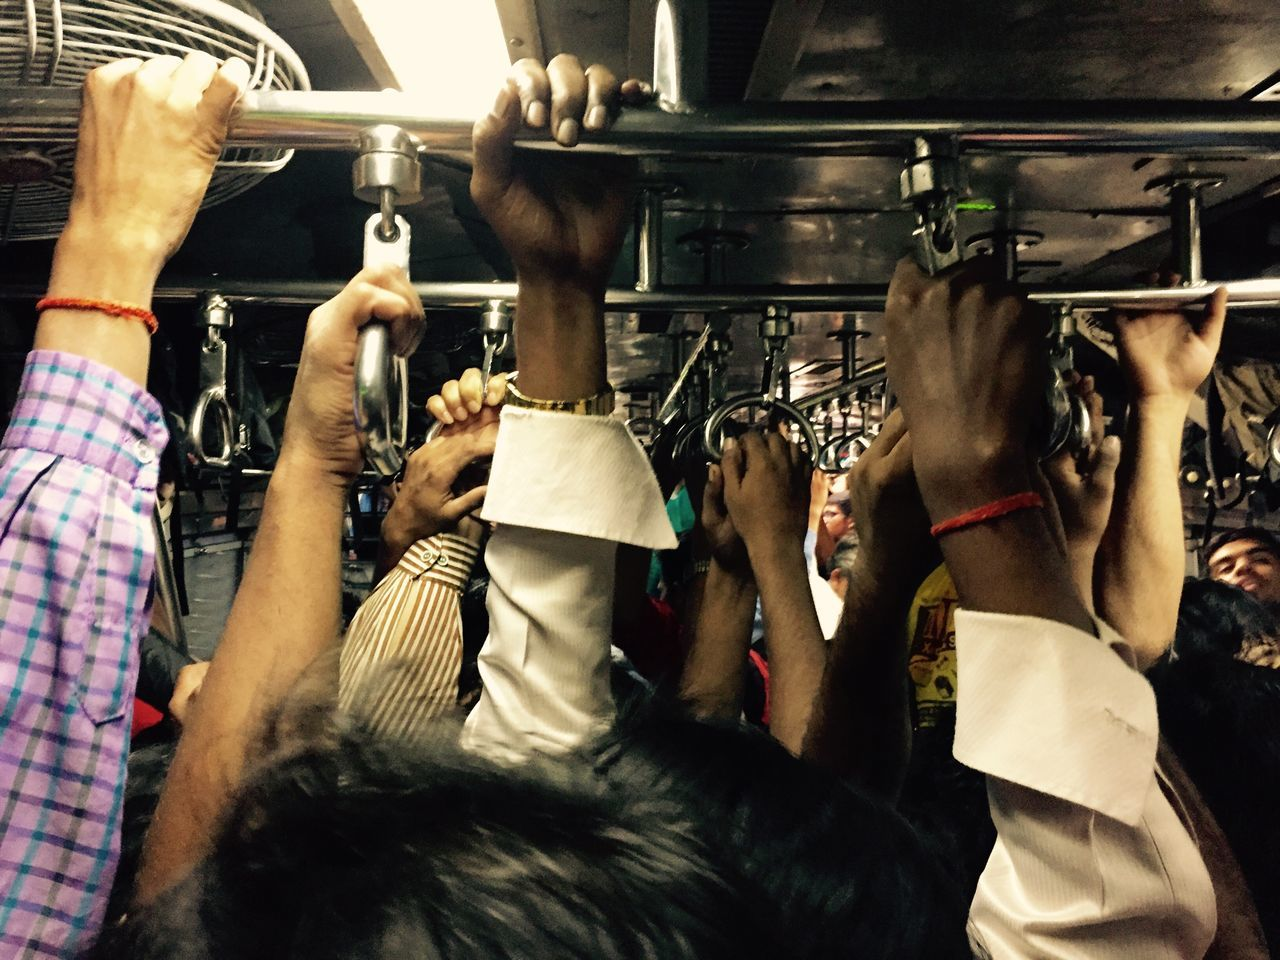 Crowd holding handle in train